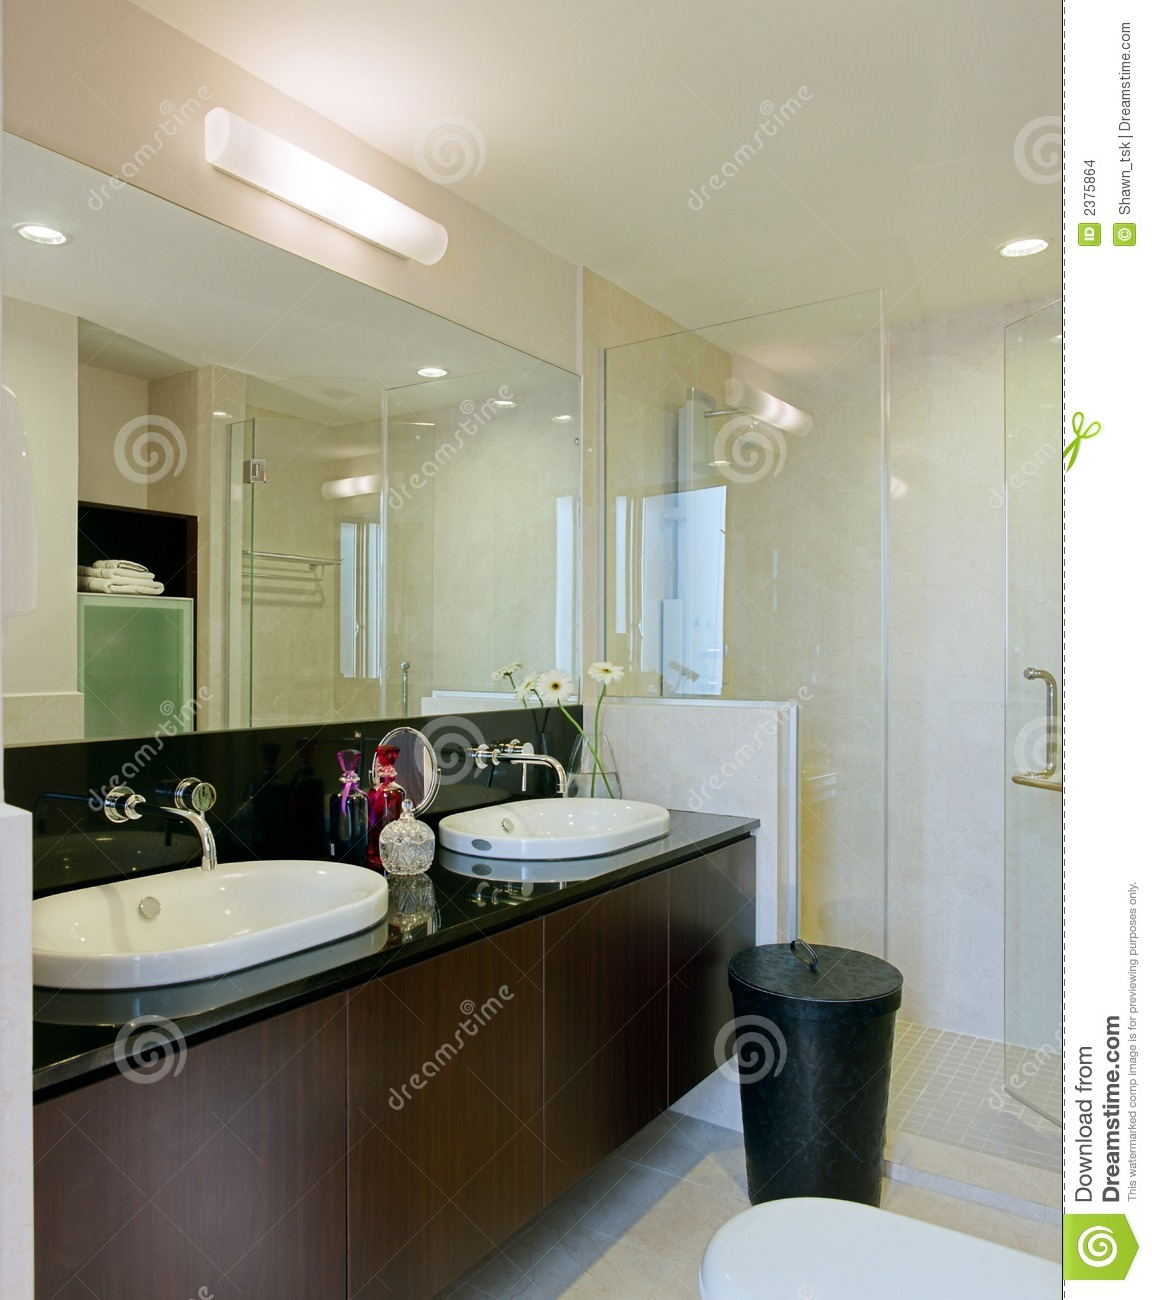 Interior design bathroom stock photo image of cabinet for Bathroom interior designs